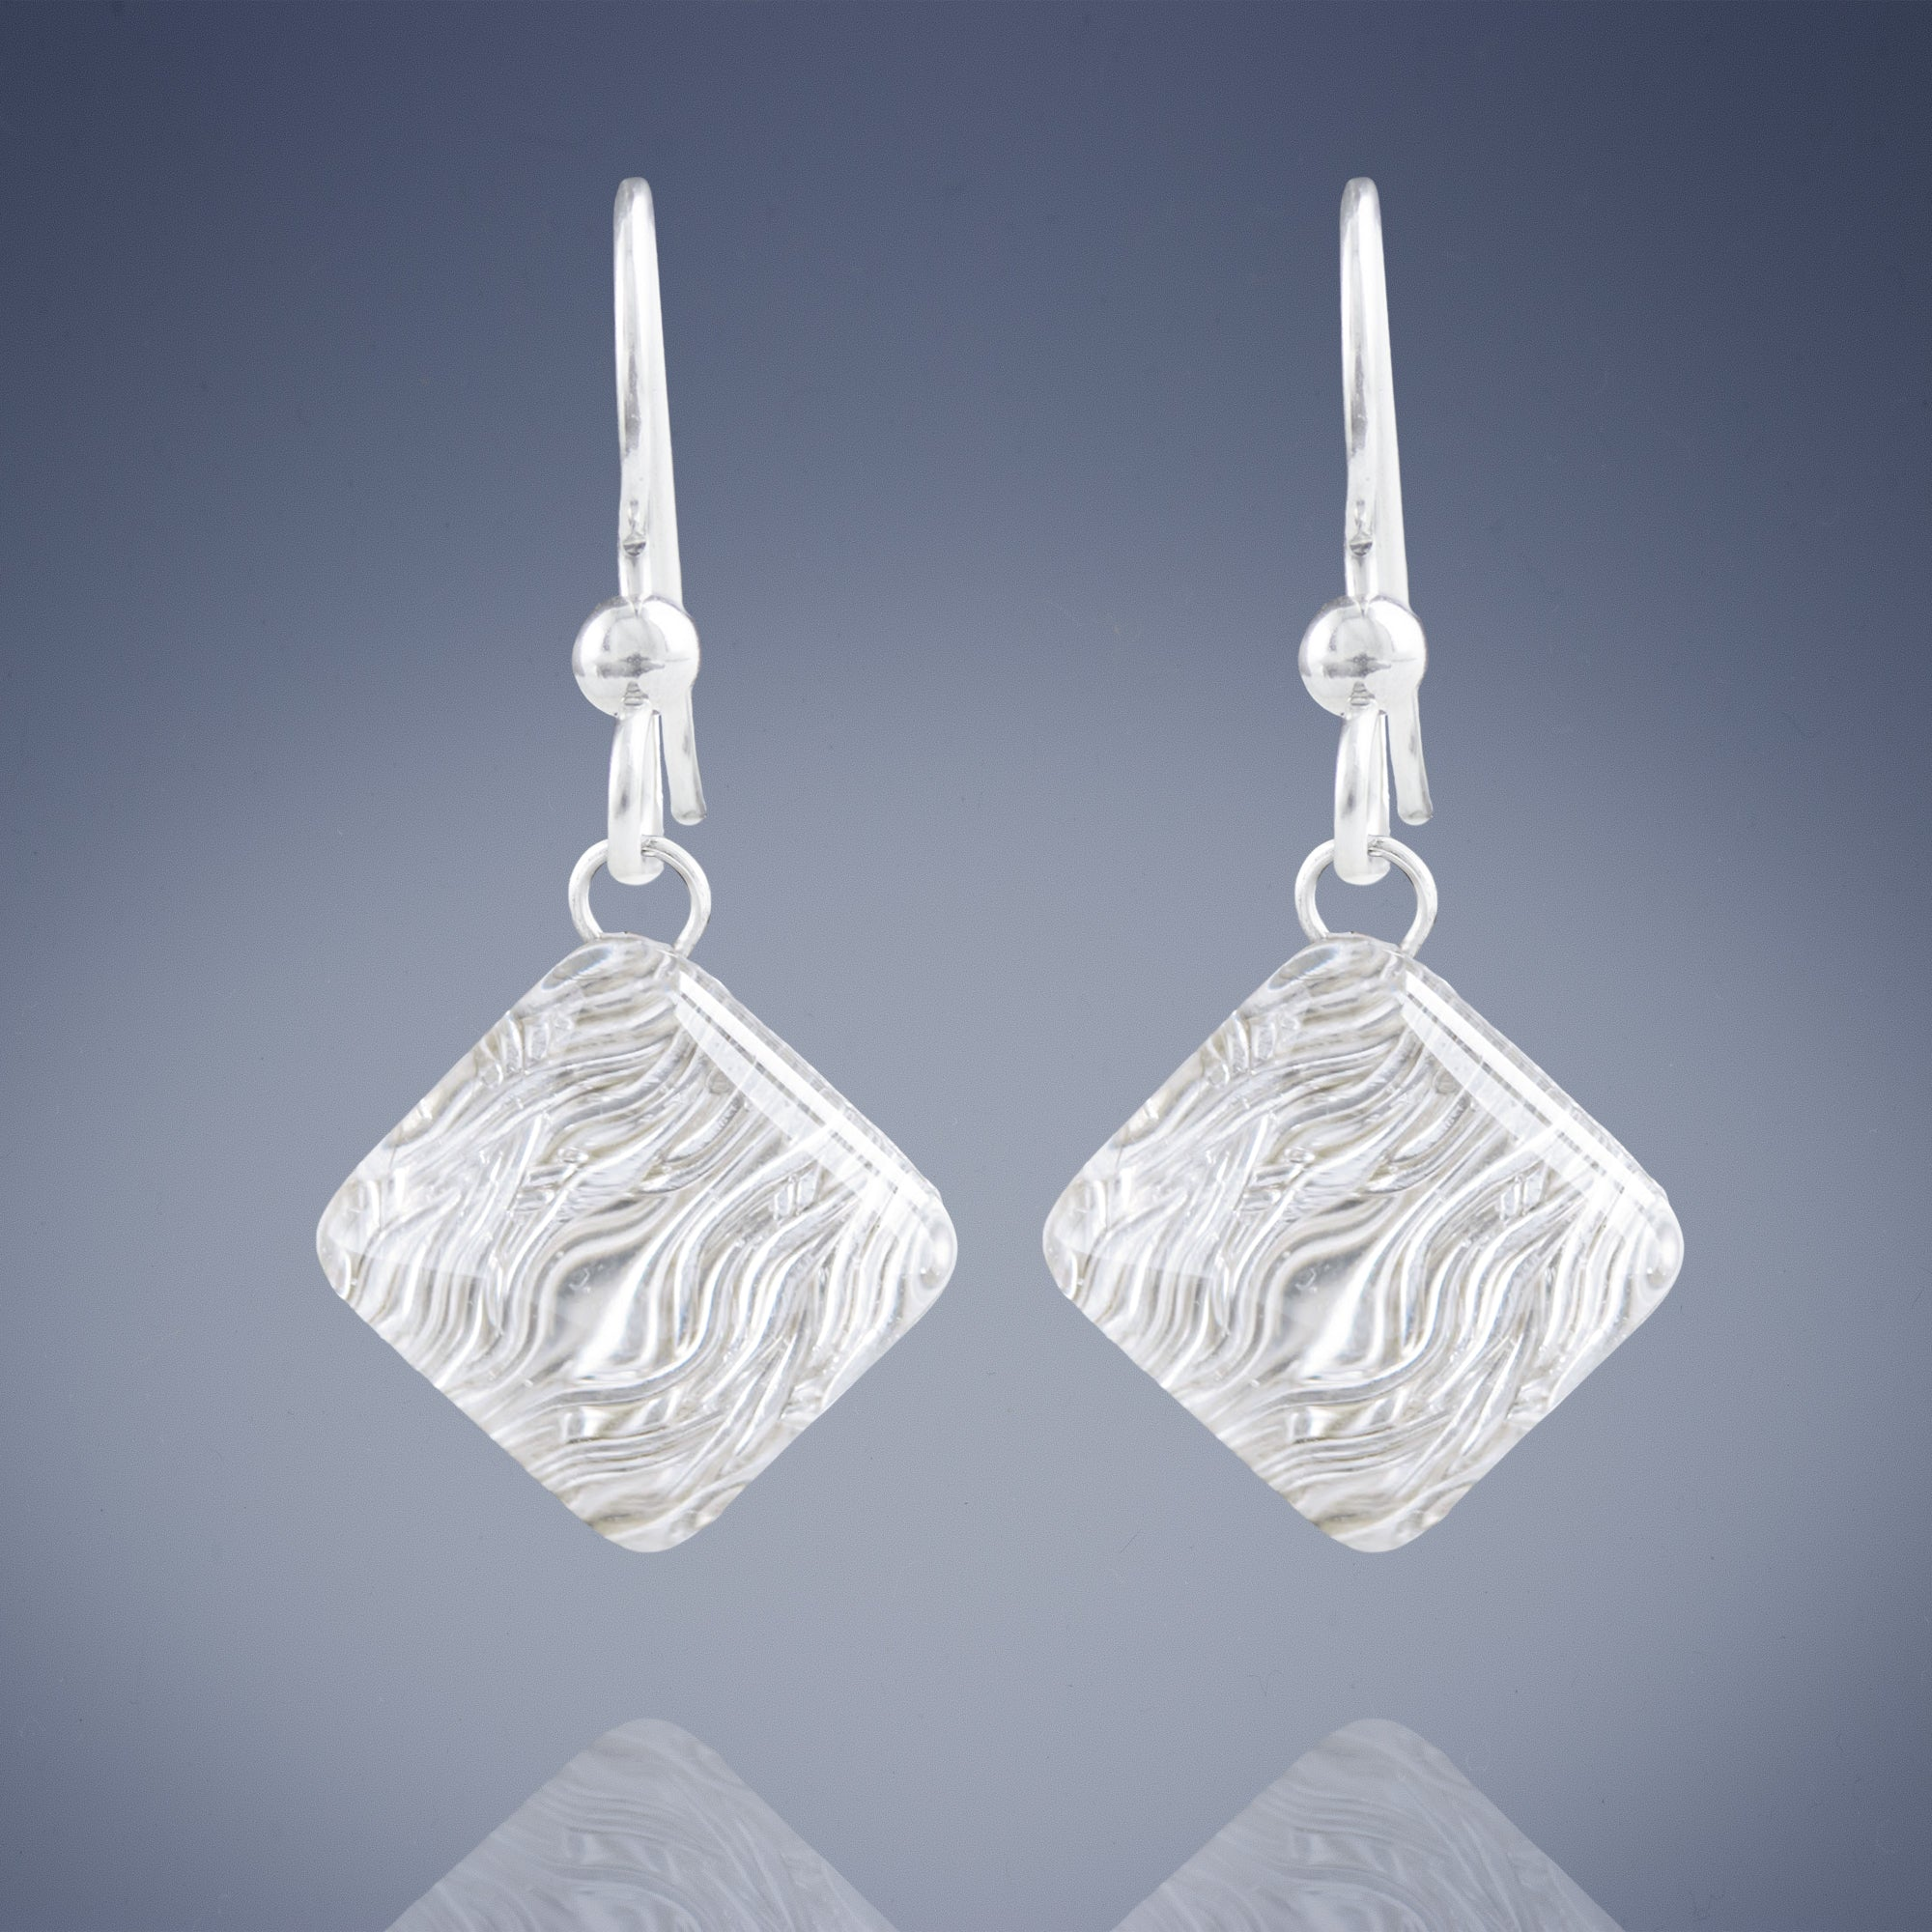 AS SEEN ON Netflix's Chambers: Silver Pyramid Shaped Earrings Featuring Handwoven Wire and Glass